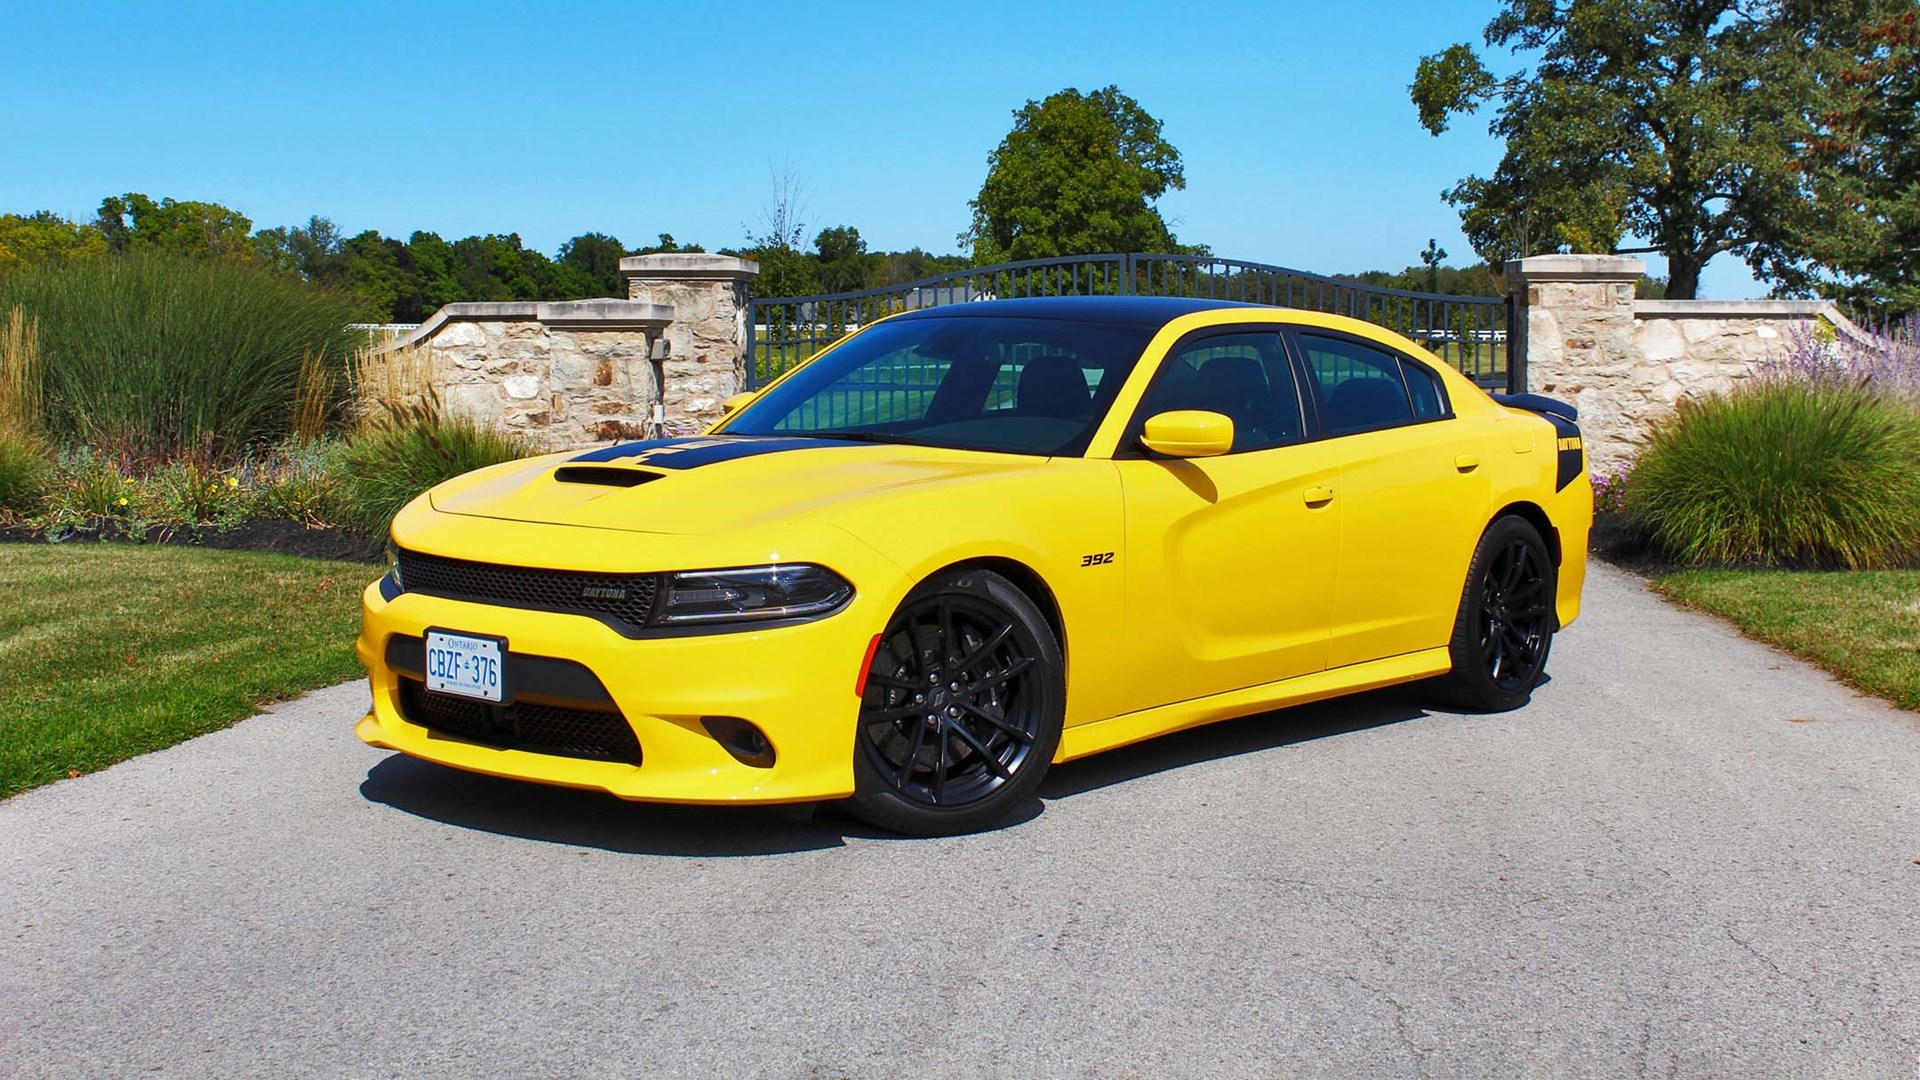 dodge charger scat pack yellow 2 Dodge Charger Daytona Scat Pack 2 test drive review